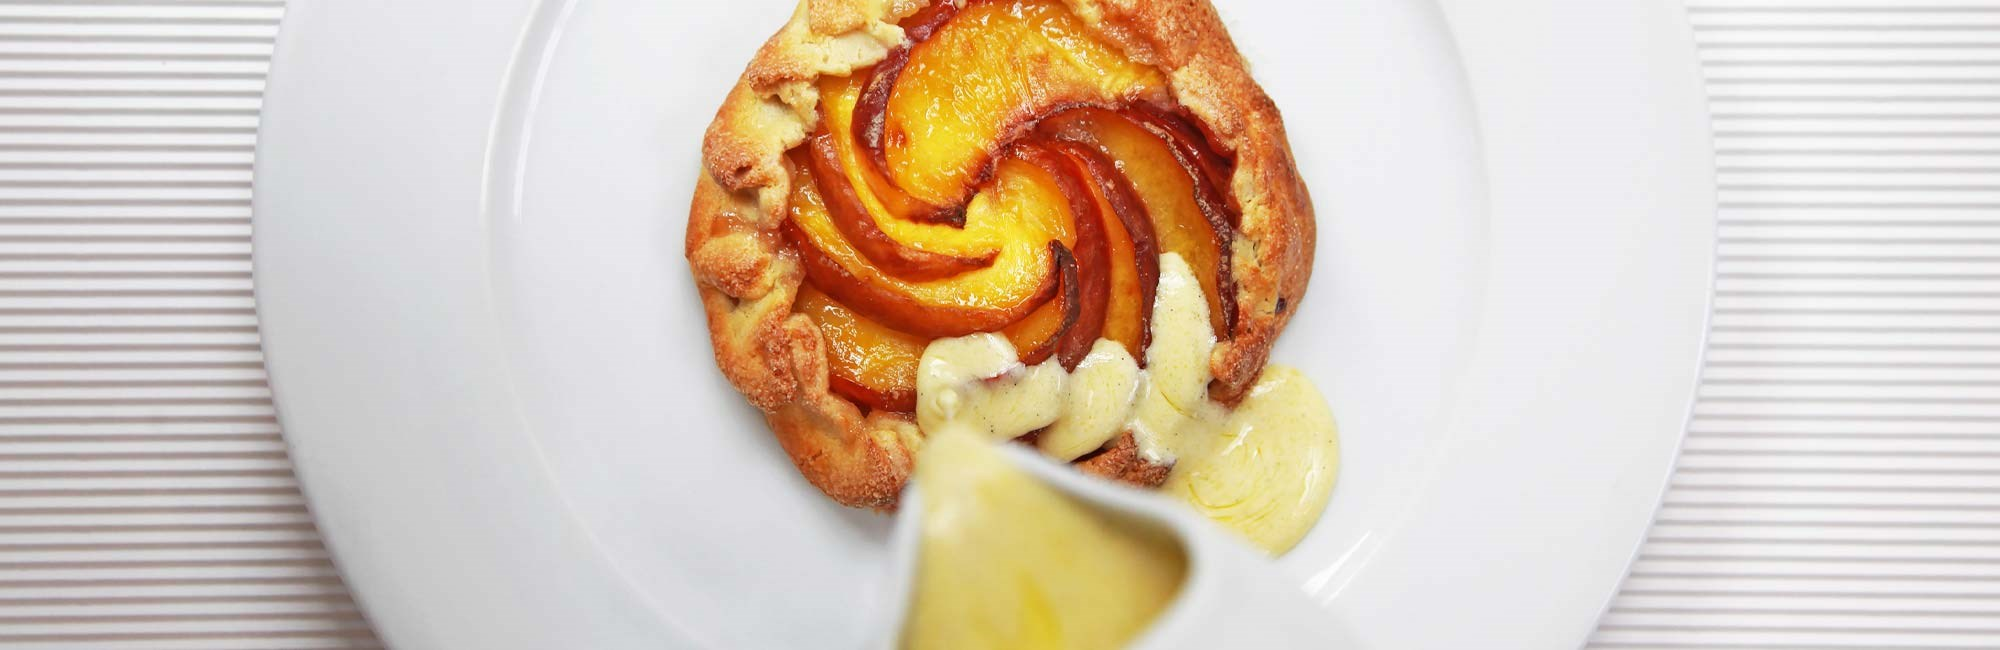 rivington shoreditch peach tart by lucy richards photography 2